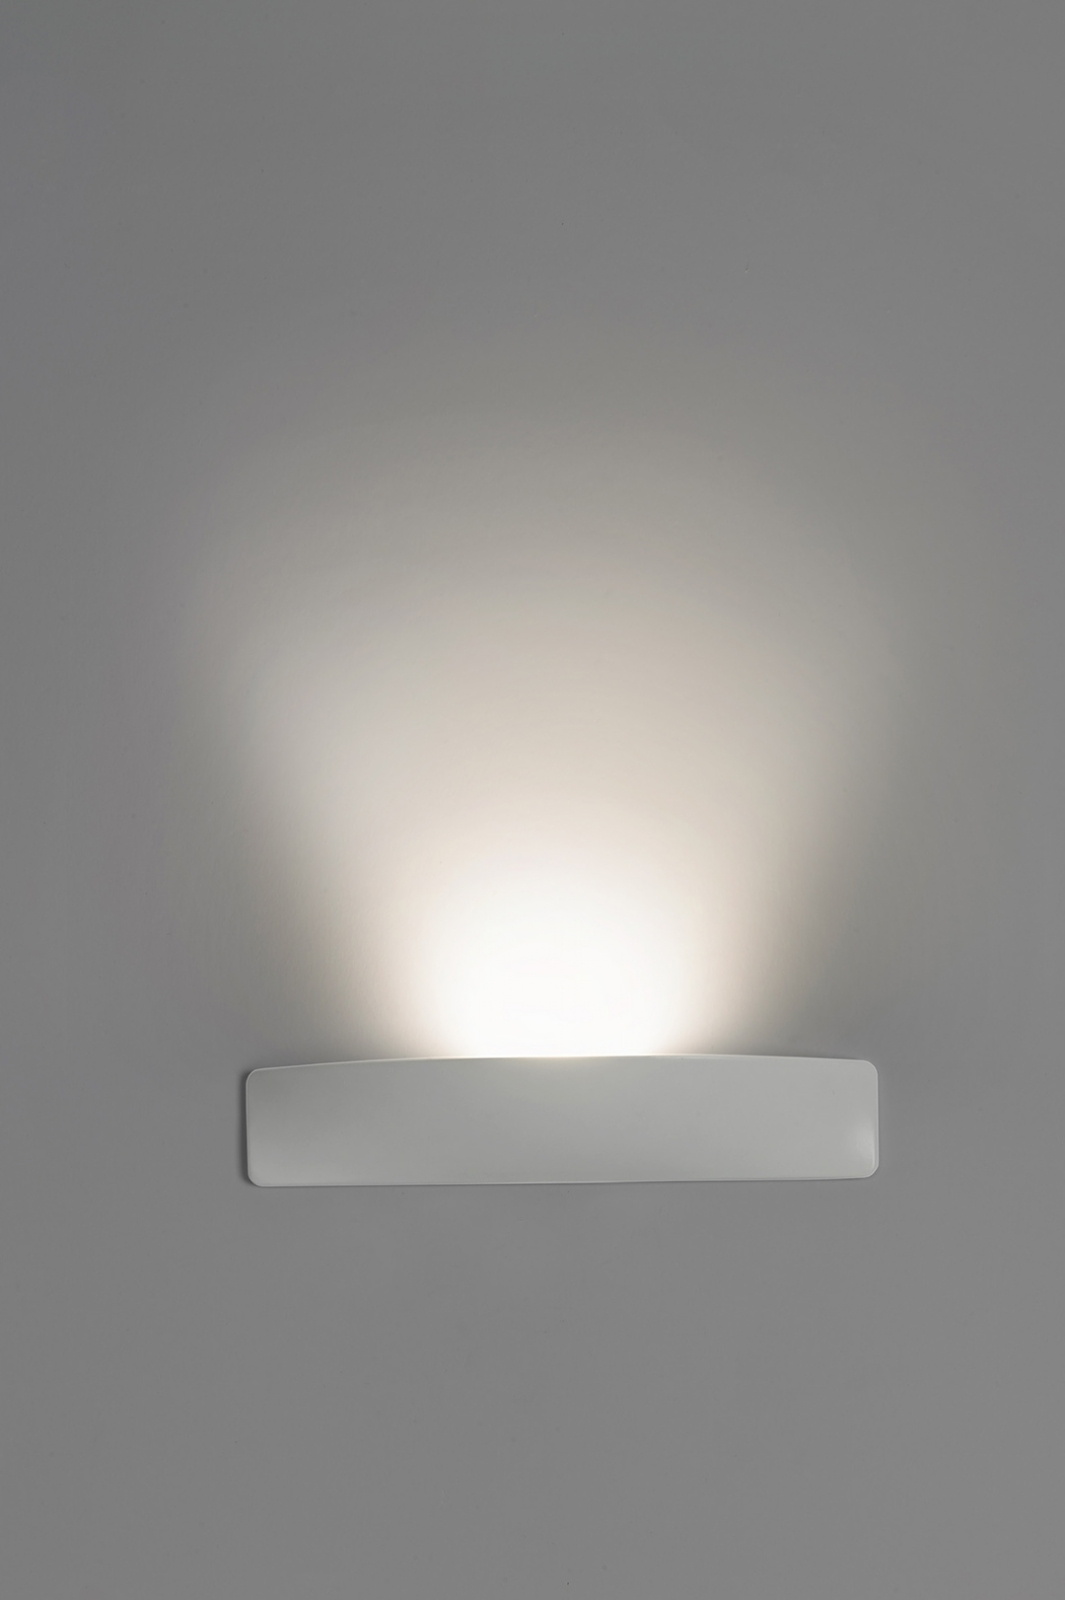 slim led wall light with interchangeable filters